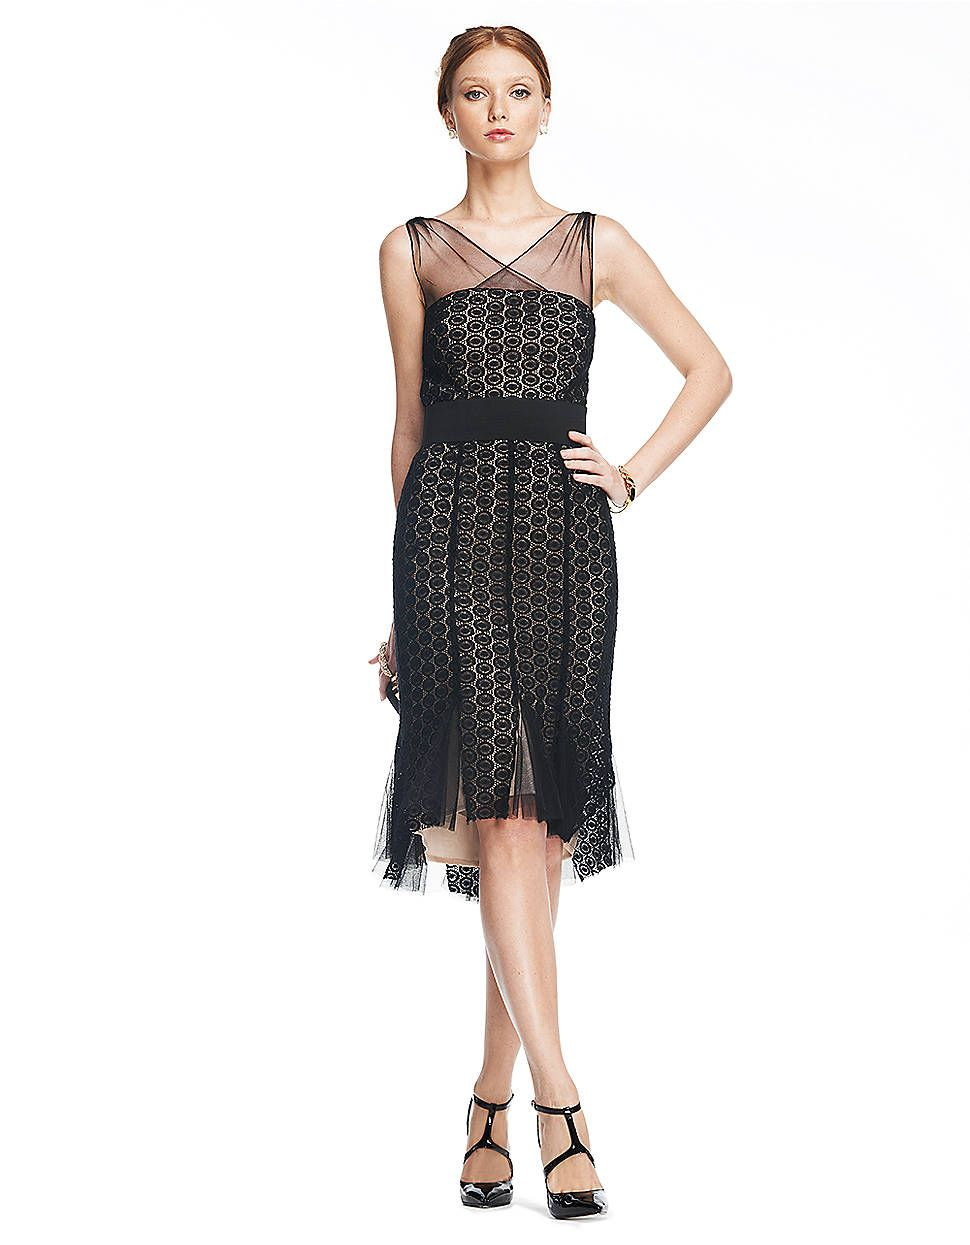 Cocktail Dress Black Mesh Lace Overlay Dress Lord And Taylor